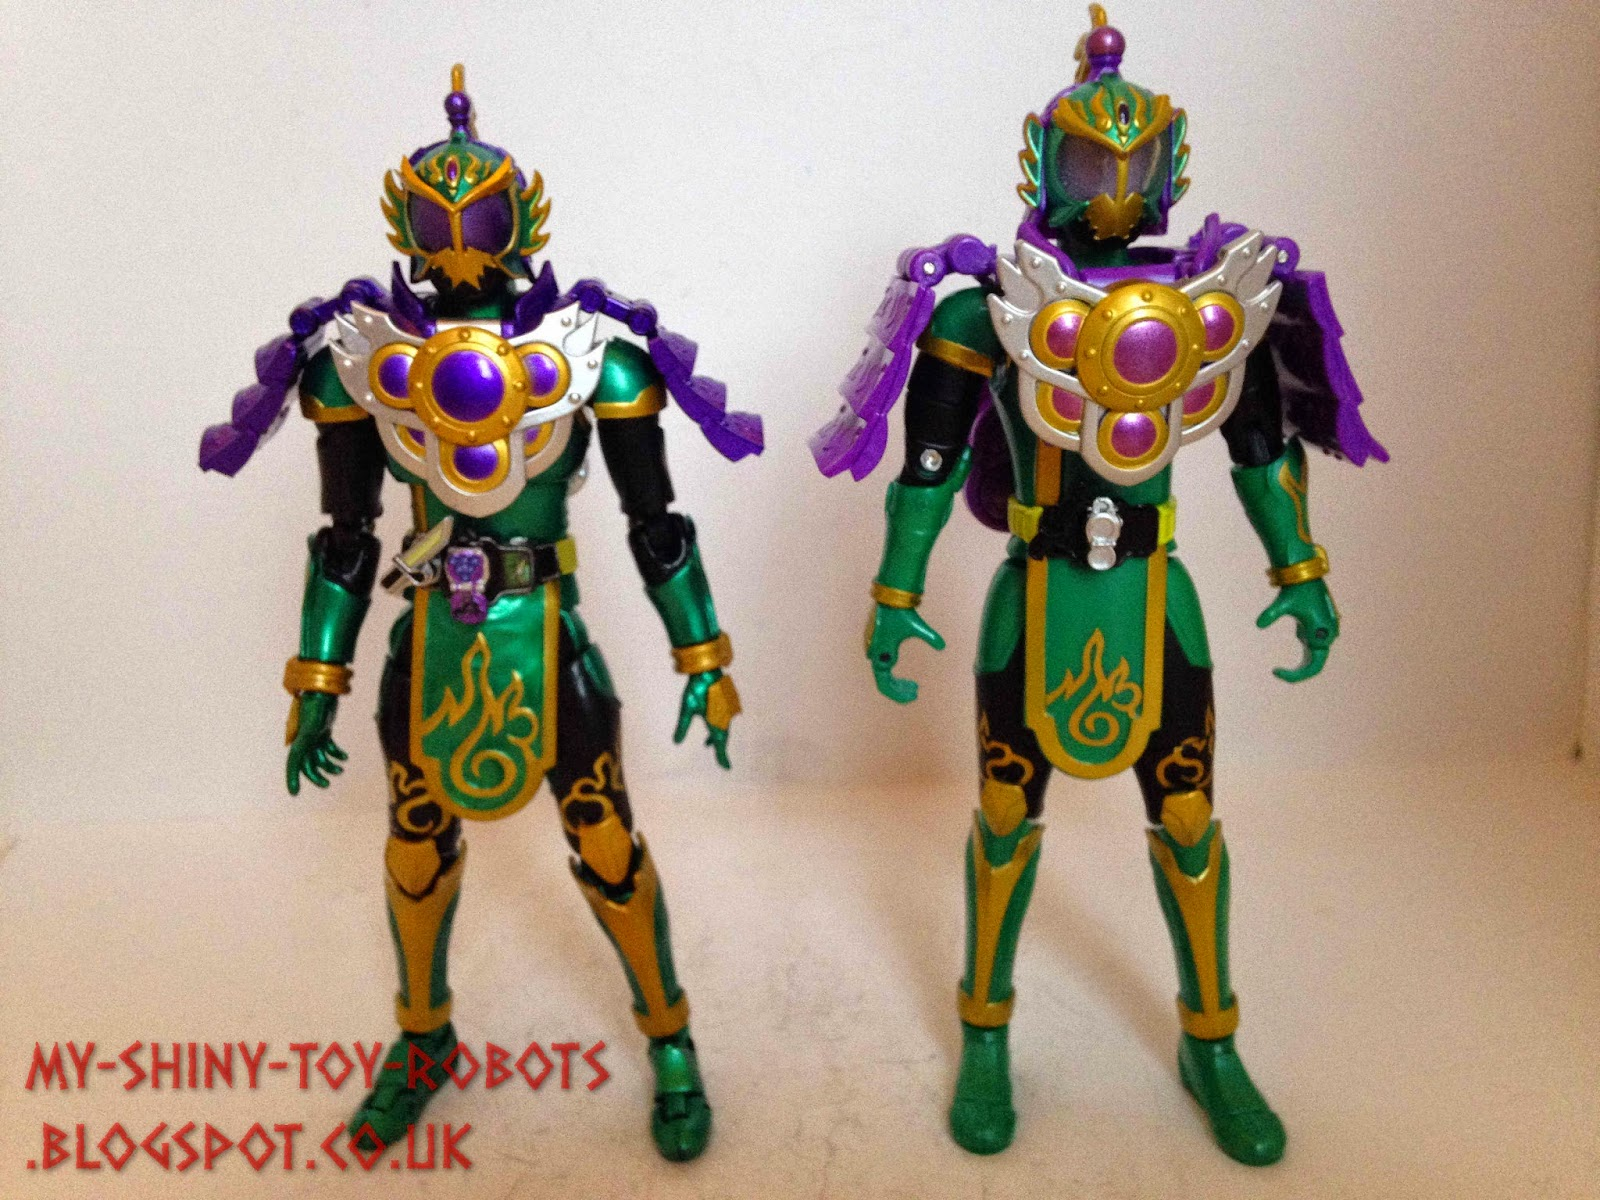 Figuart/Arms Change Comparison